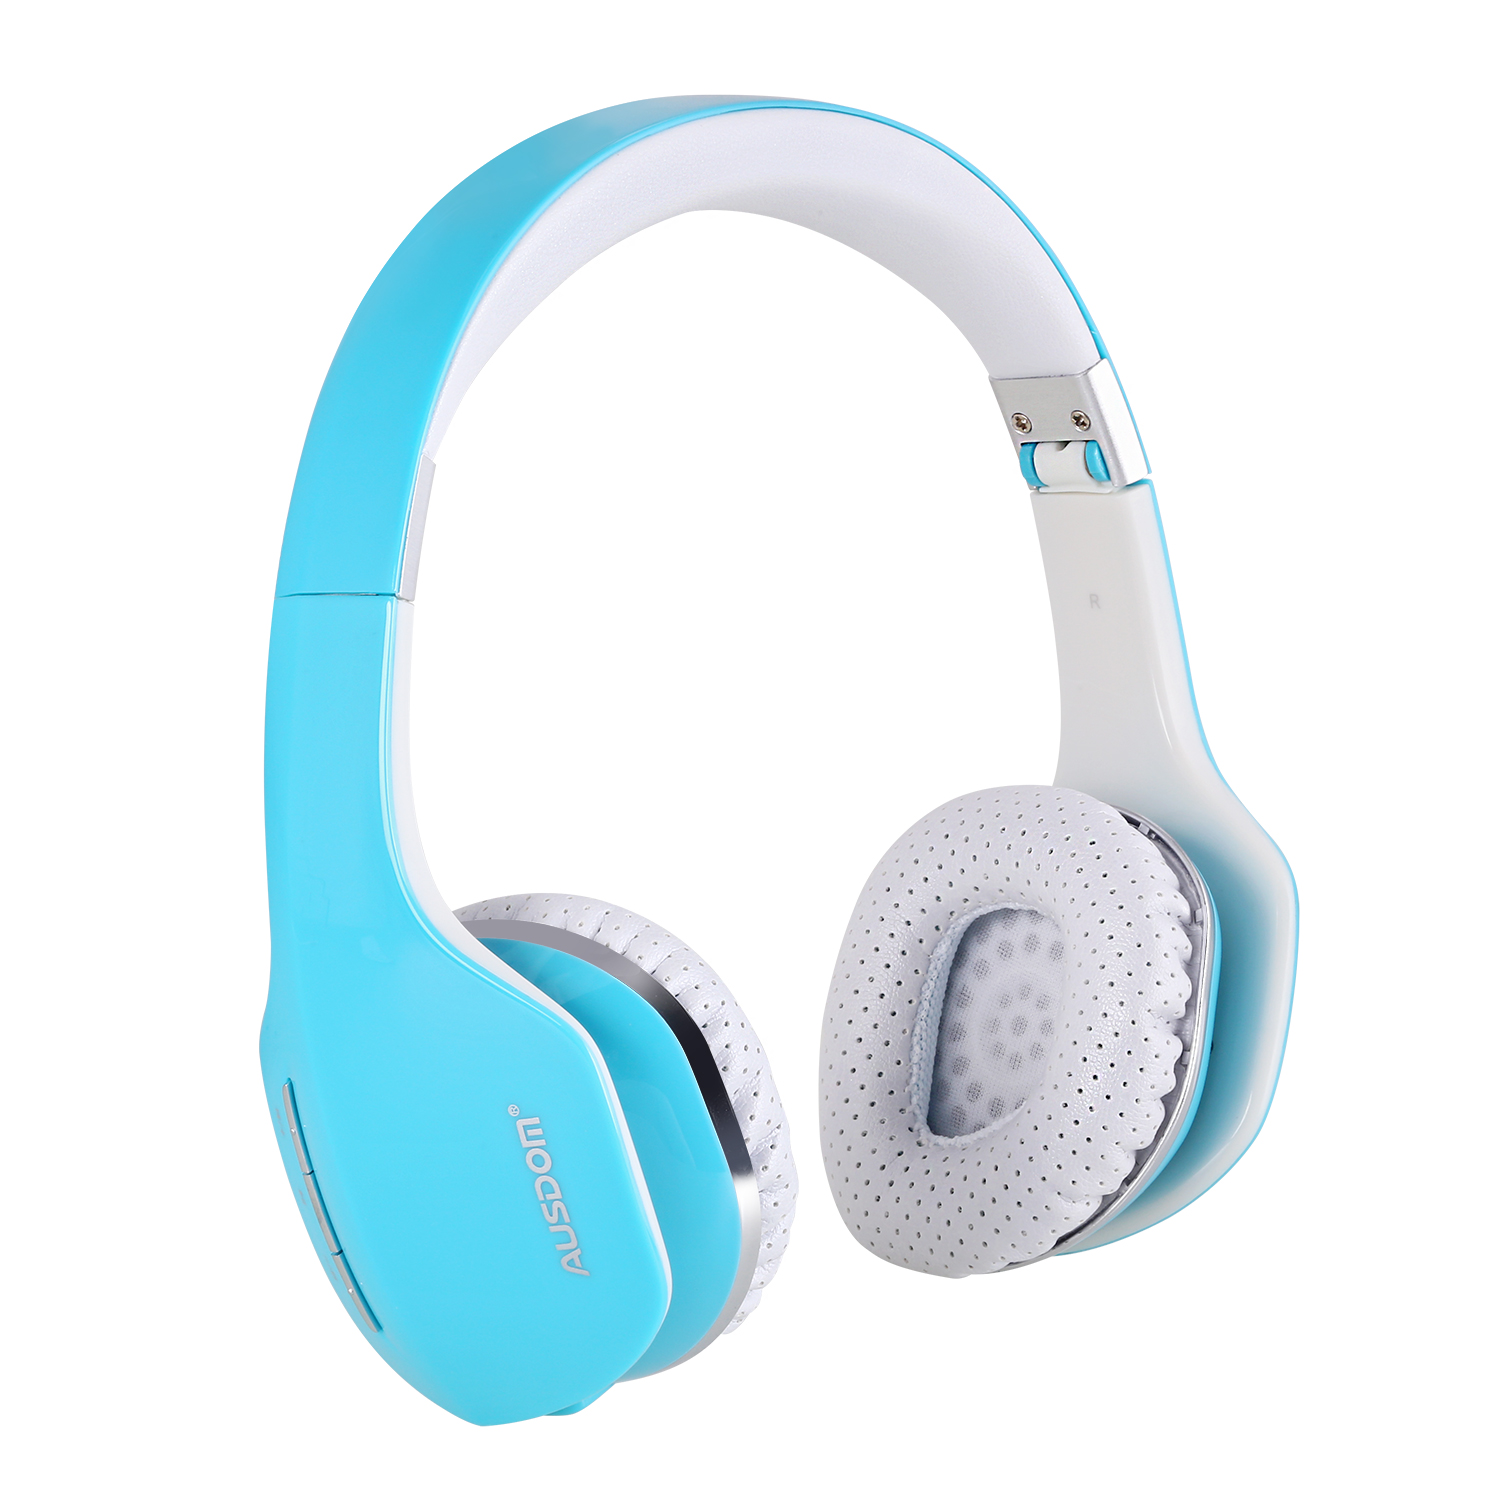 Bluetooth Wireless Headset Walmart: Auto-mart On Walmart Seller Reviews